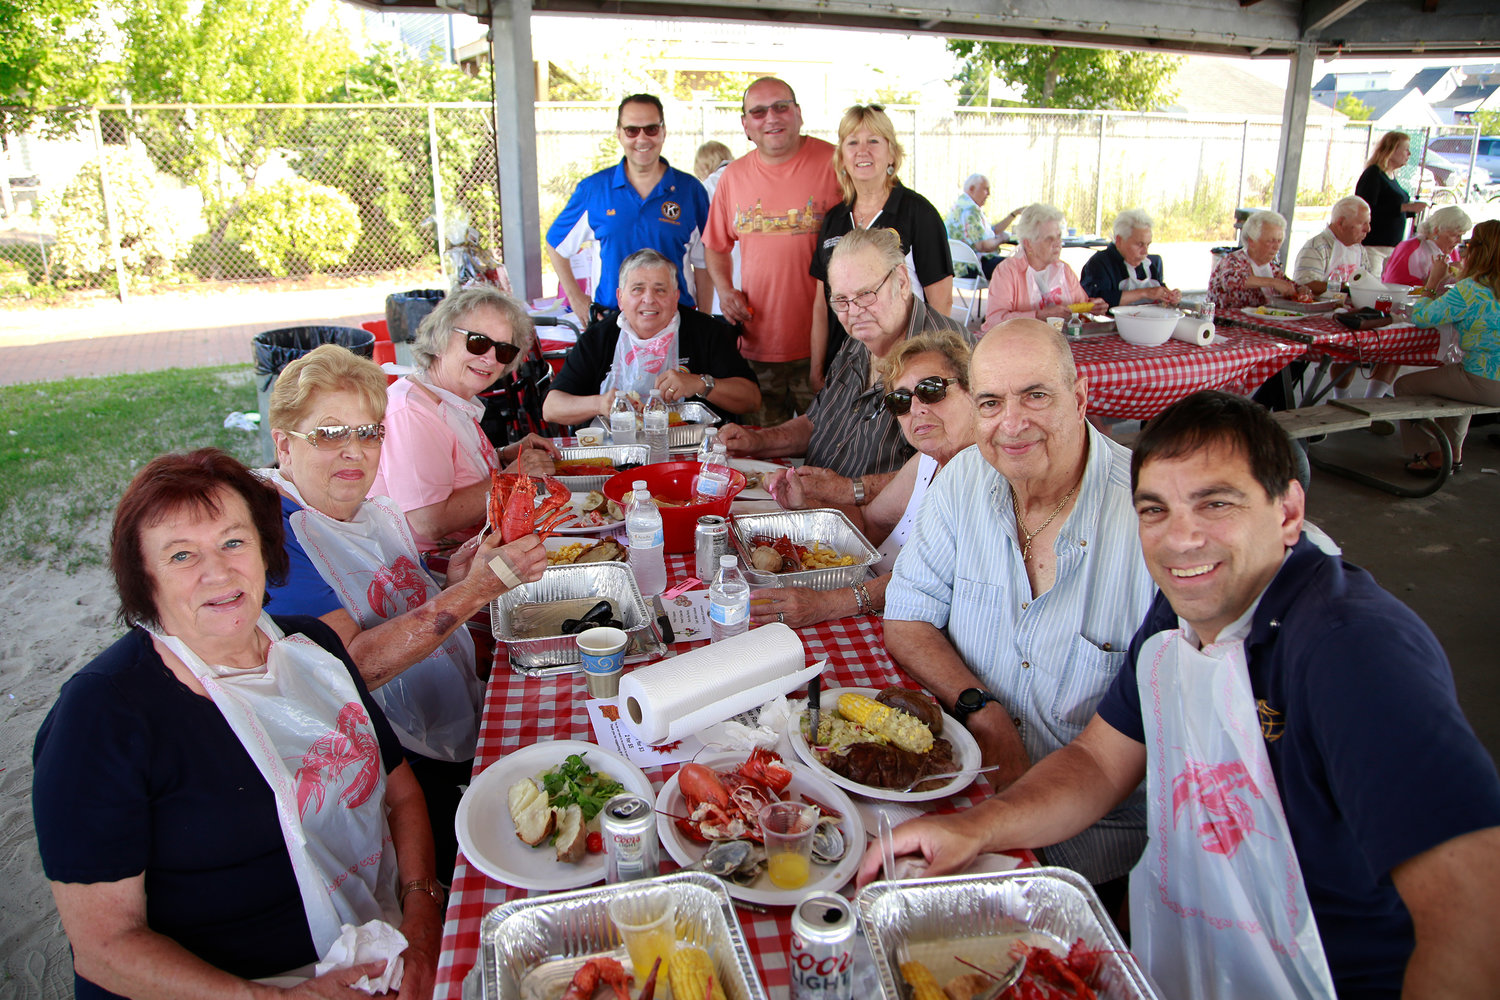 More than a dozen Kiwanians enjoyed the festivities.